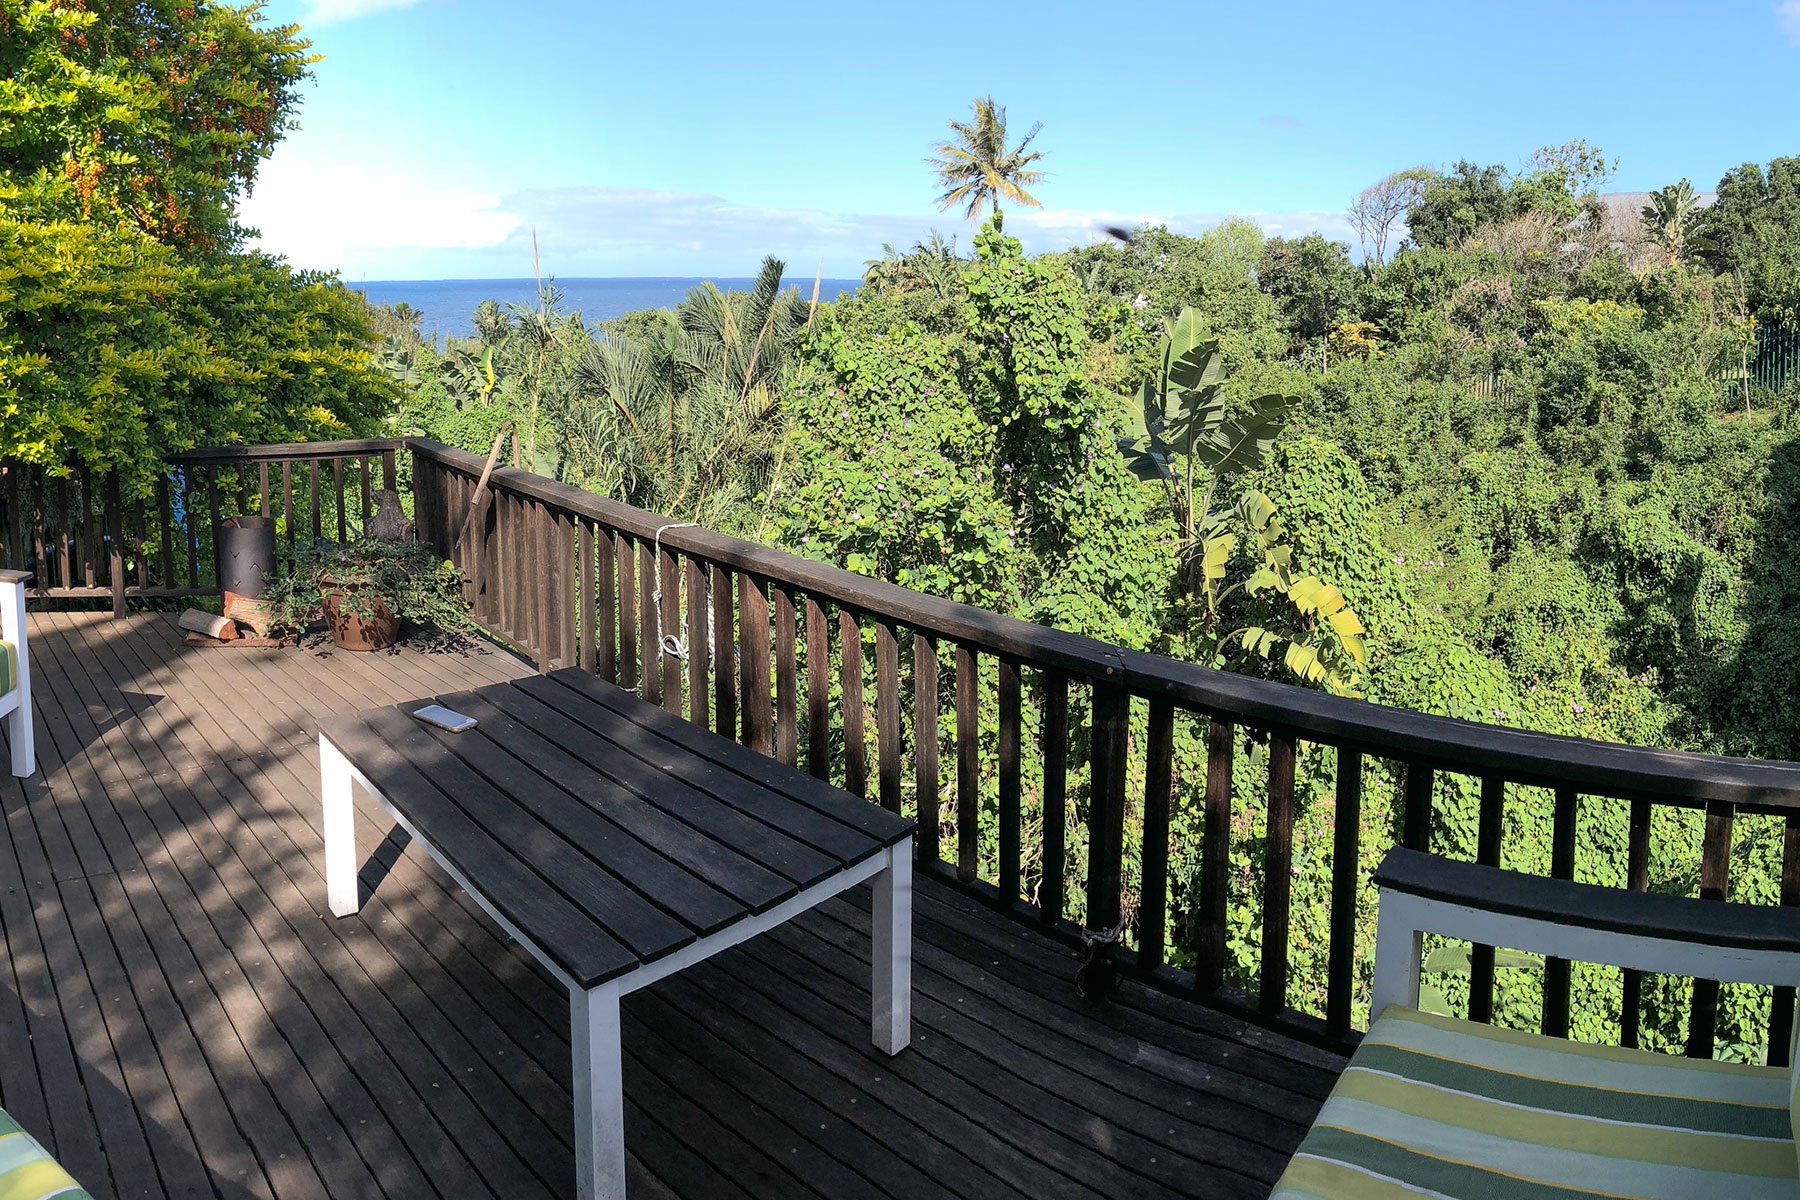 View from a deck onto the sea